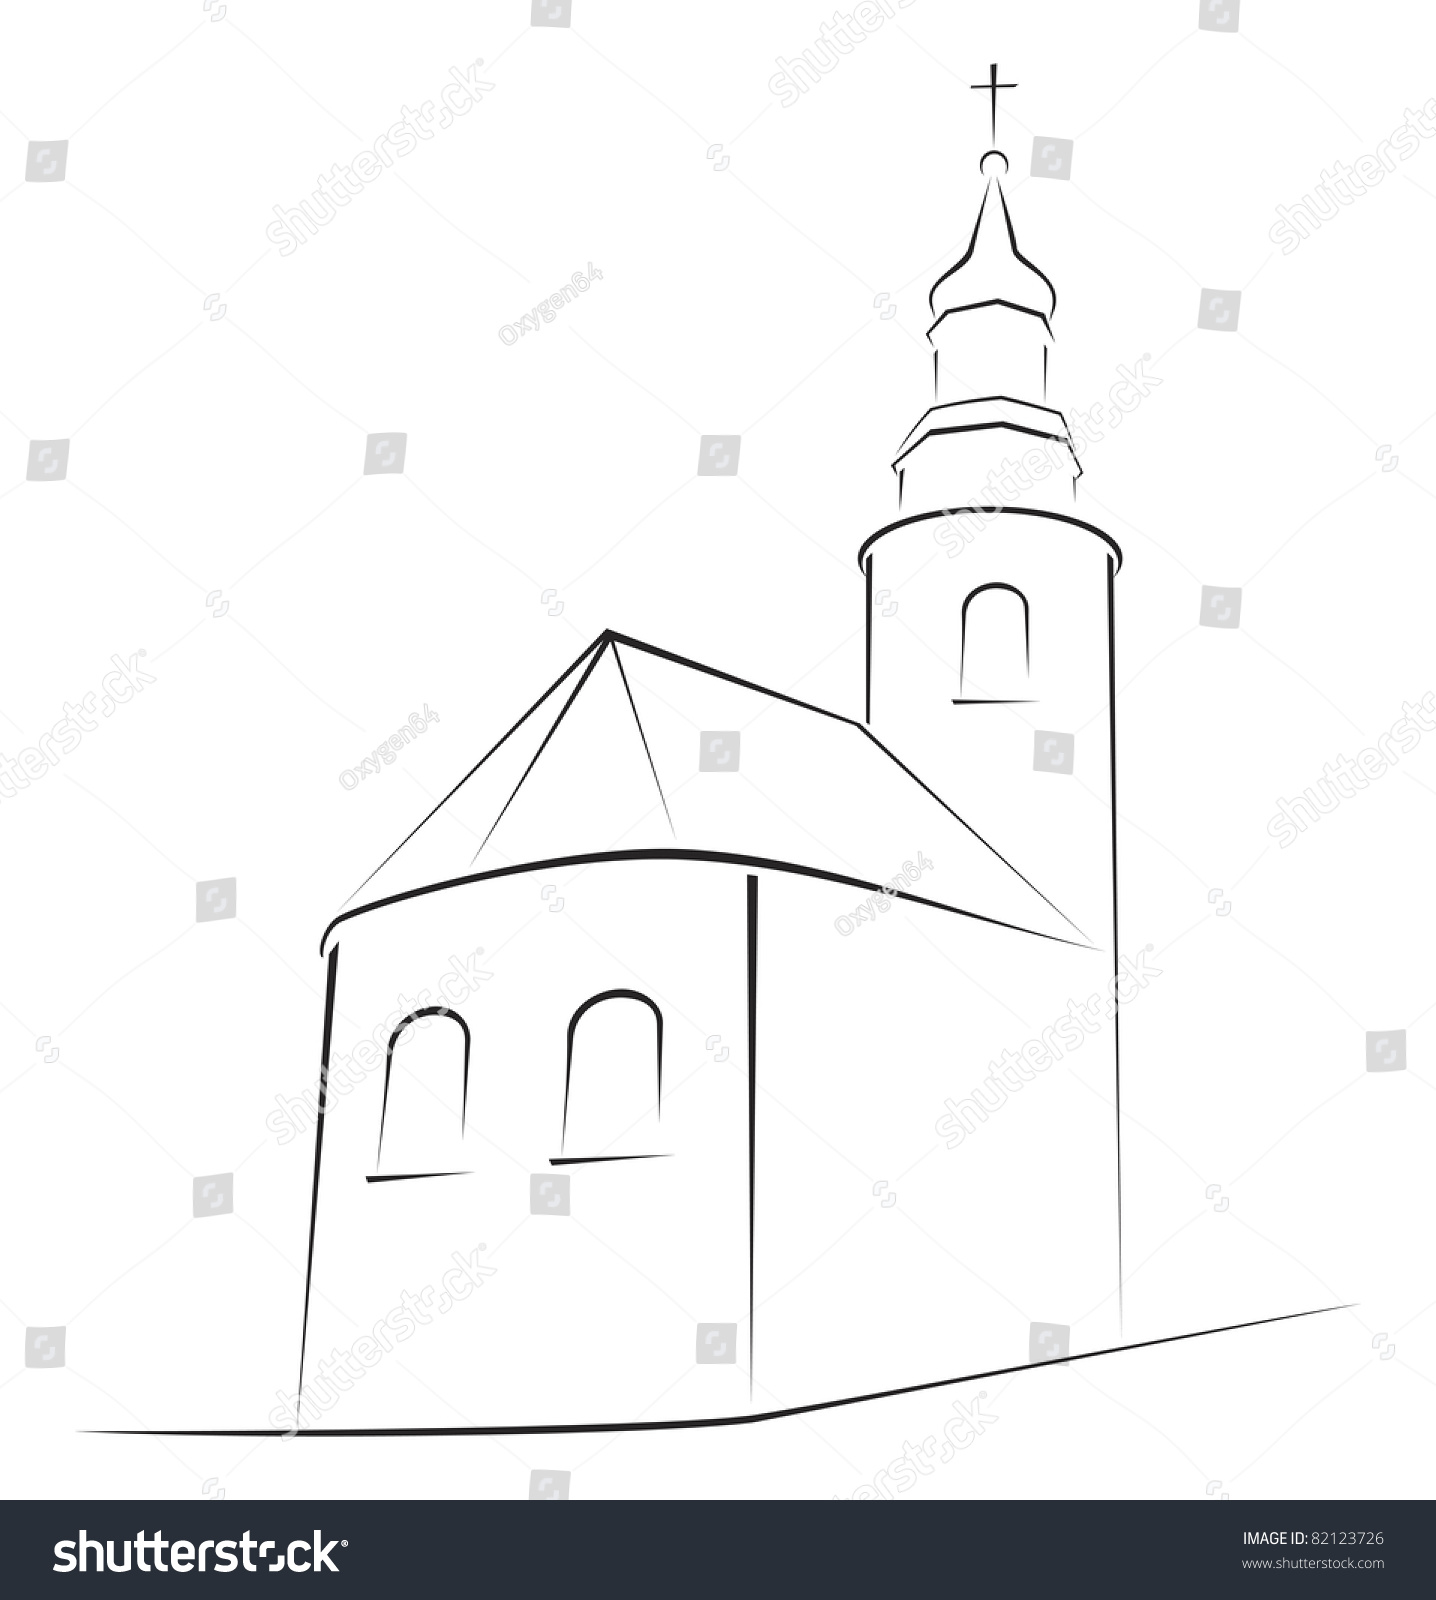 structure church on simple sketch stock vector 82123726 shutterstock